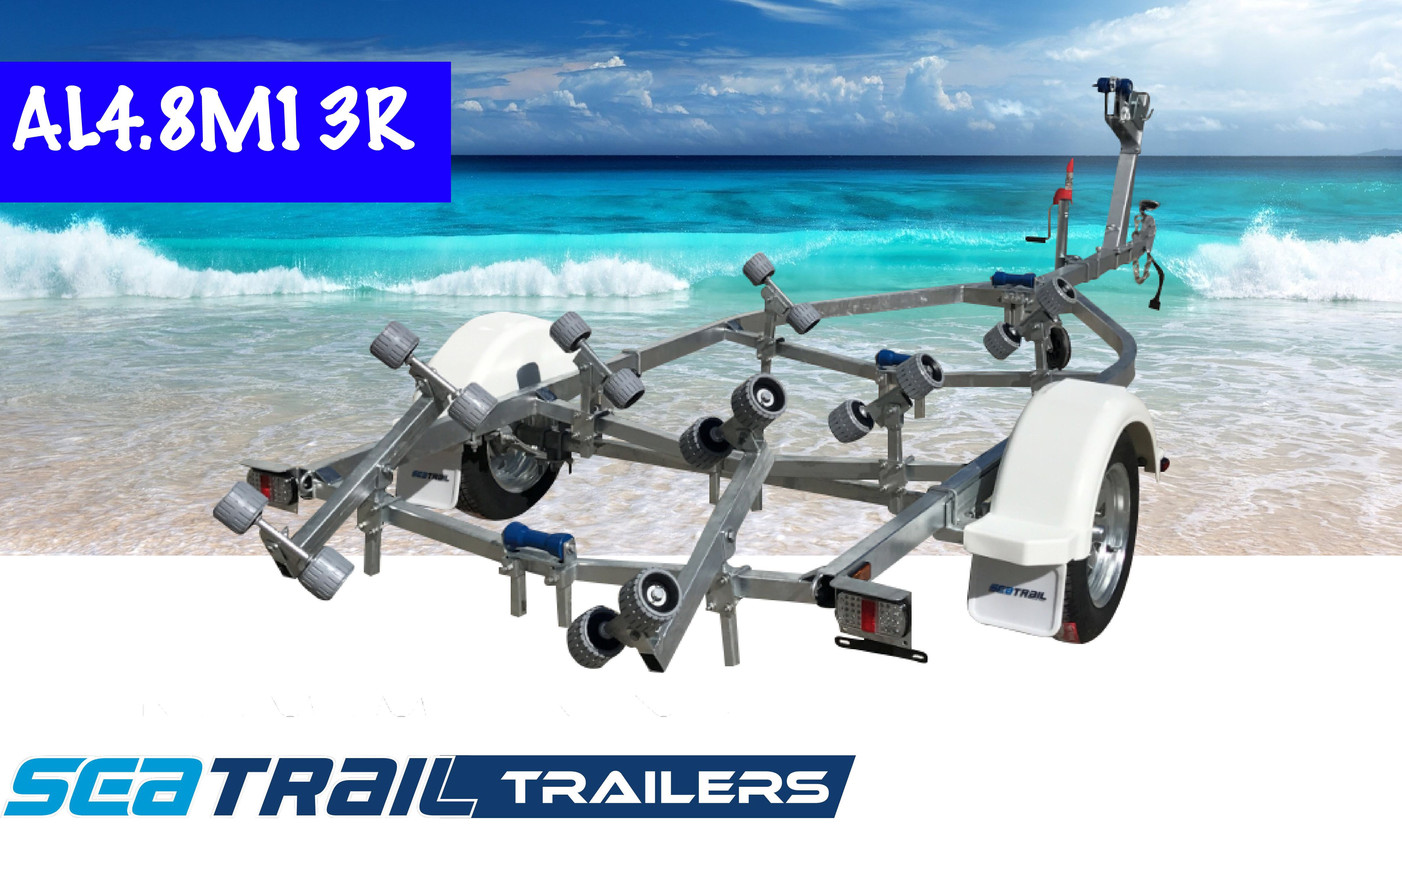 SEATRAIL AL4.8M13R ROLLERED BOAT TRAILER